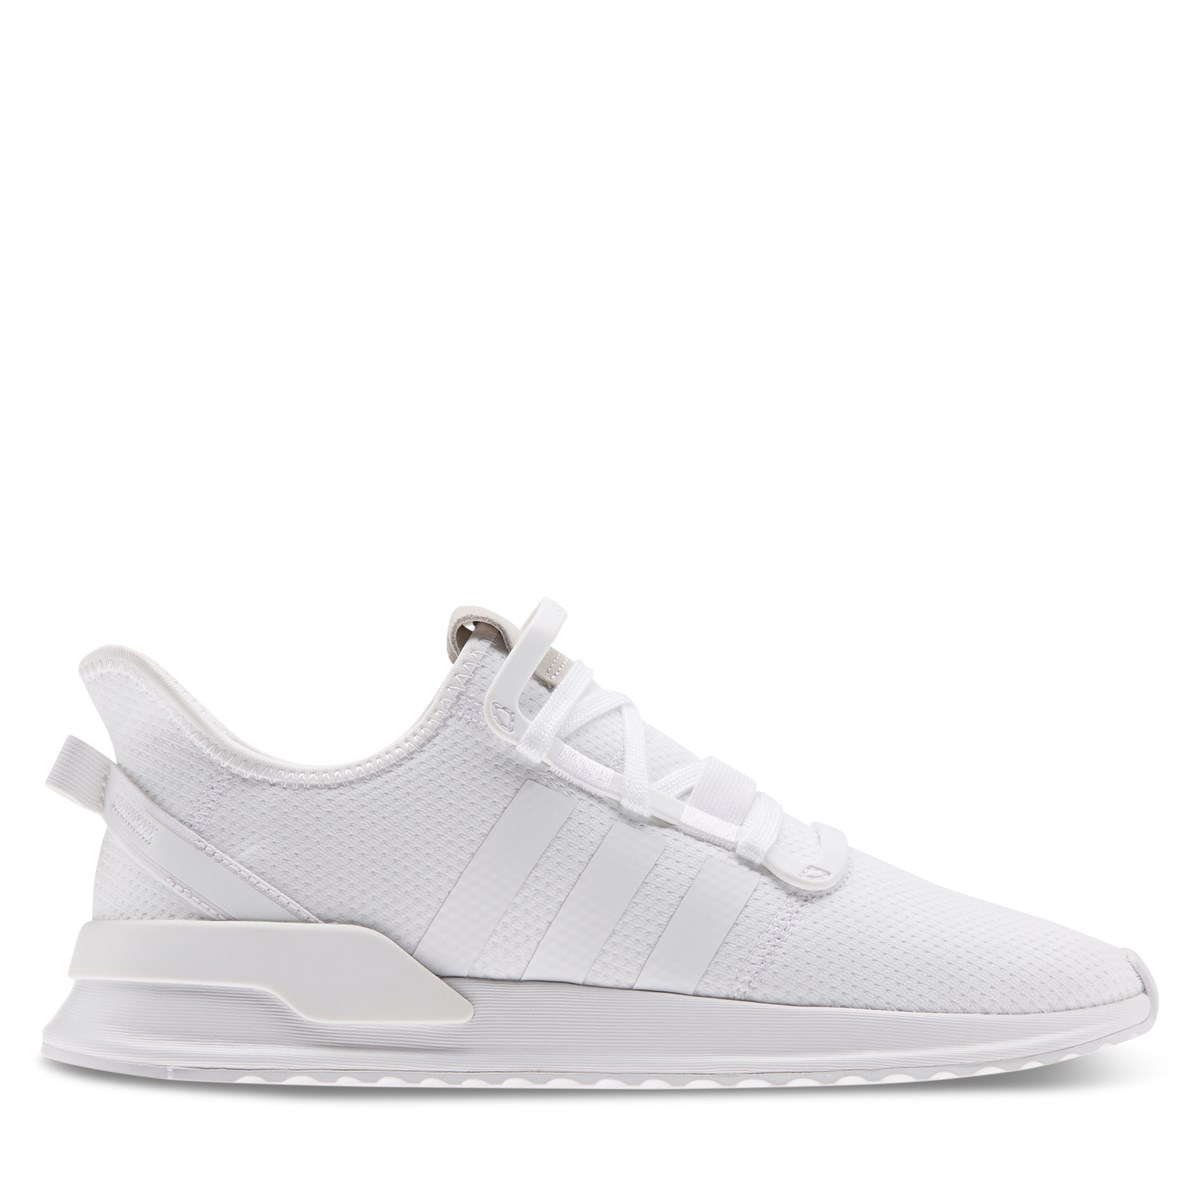 Men's U Path Run Sneaker in White